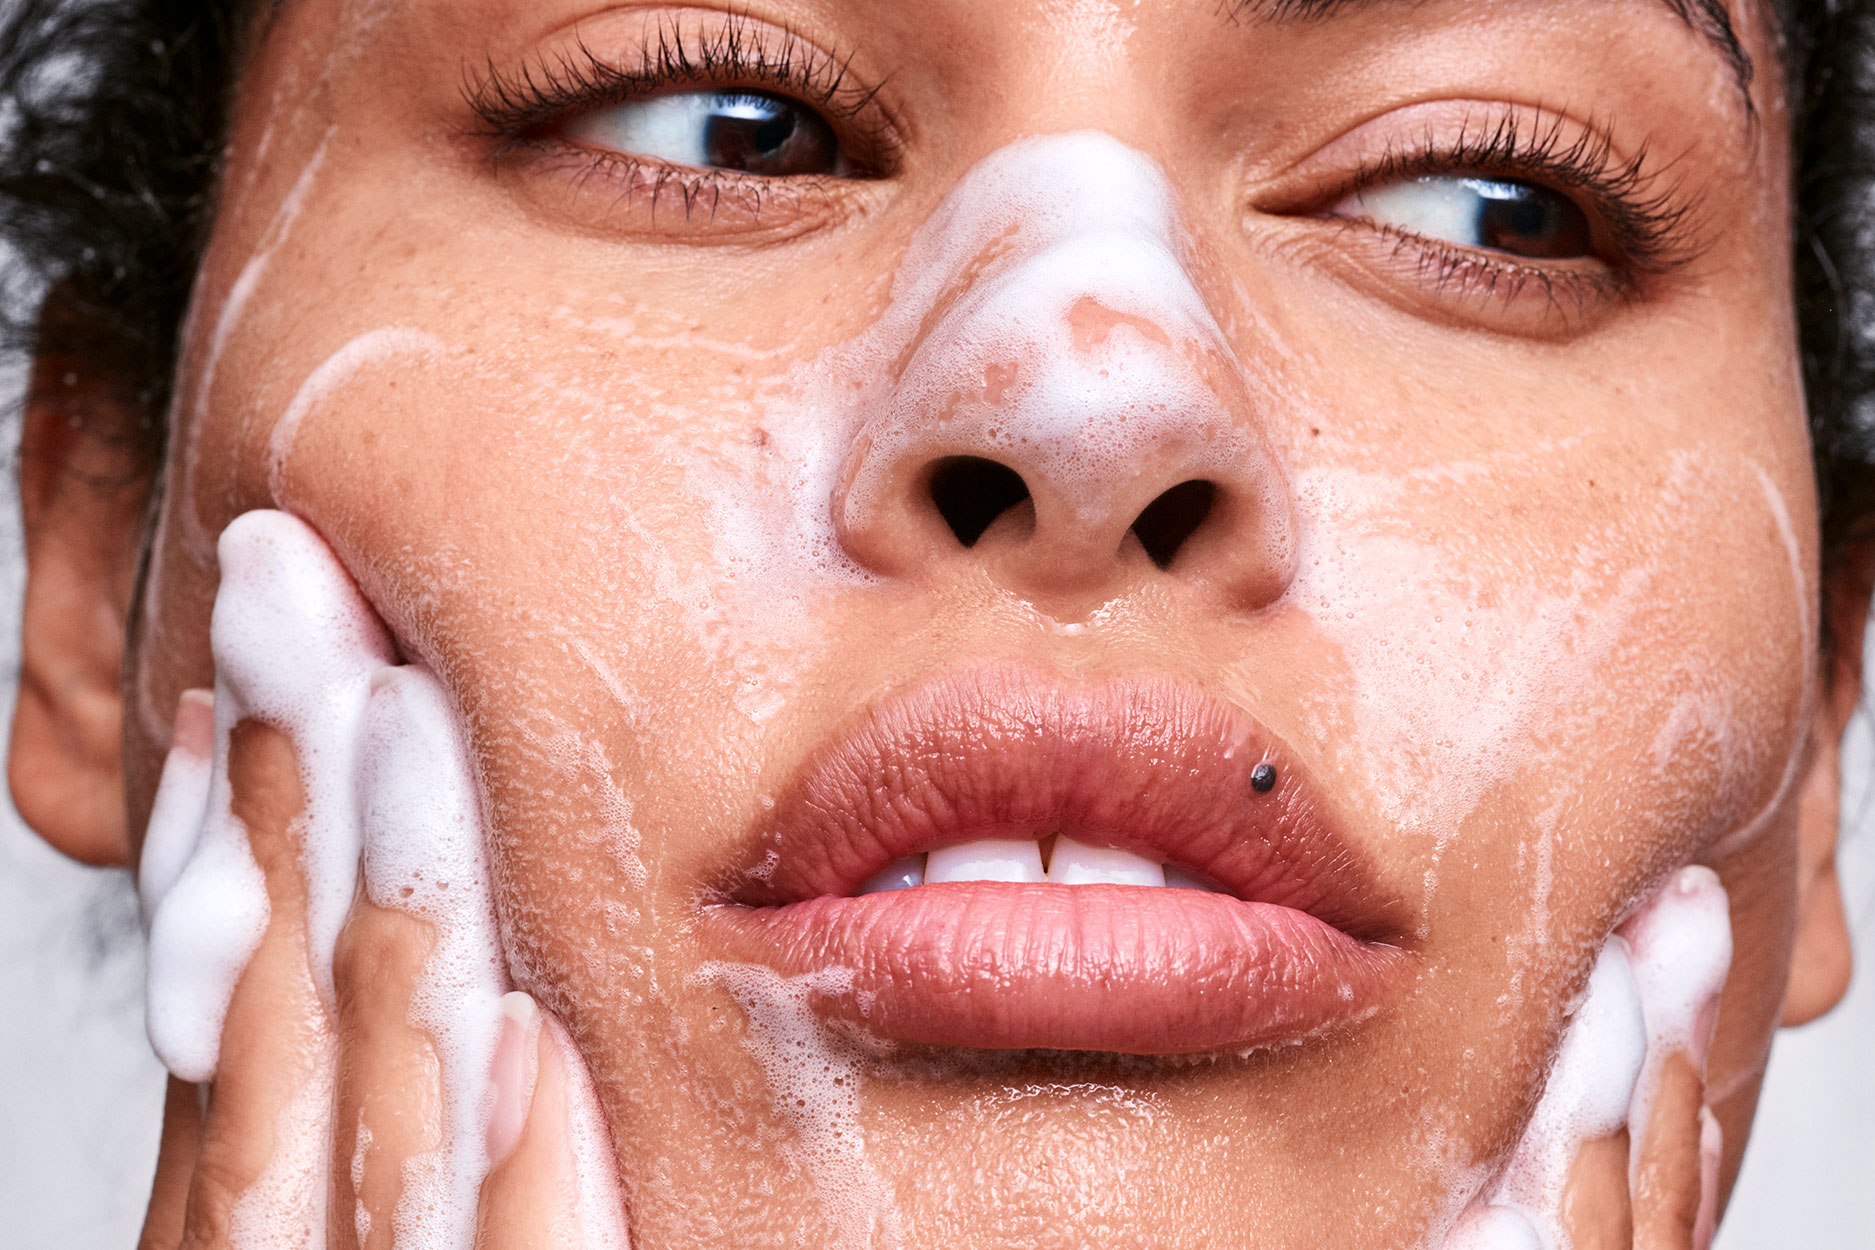 face washing with soapy cleanser